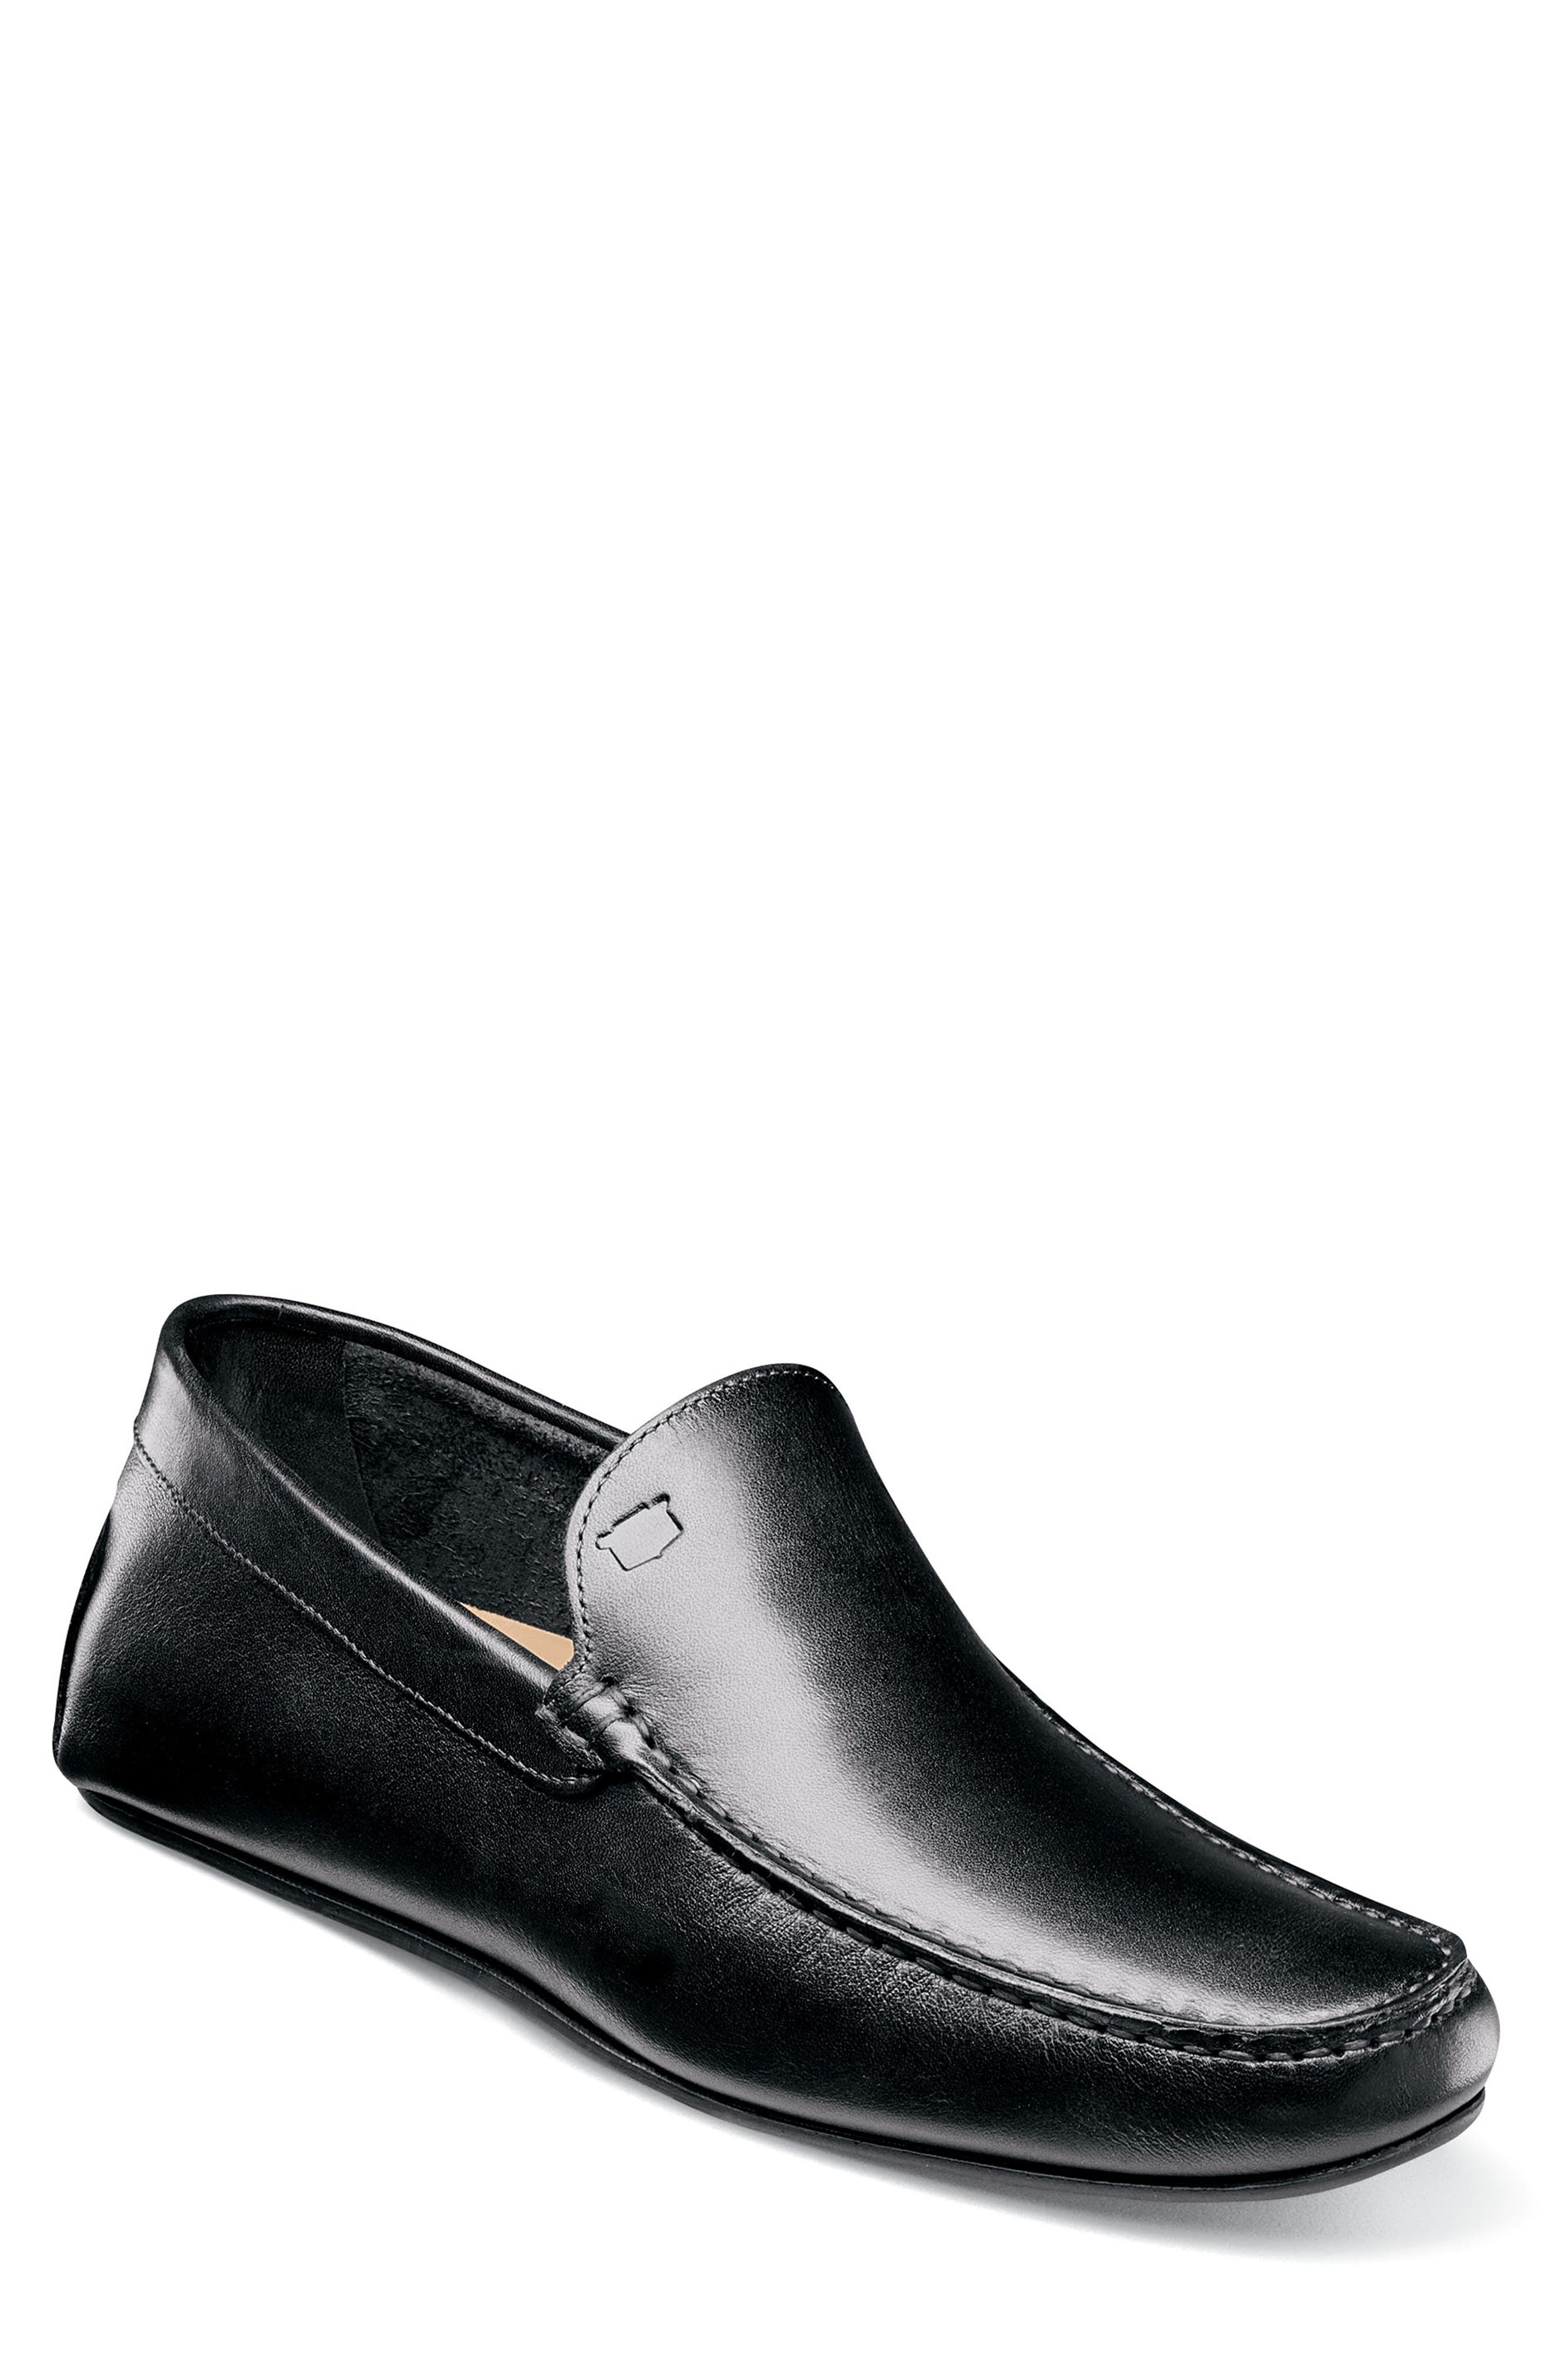 Navono Driving Moccasin,                             Main thumbnail 1, color,                             BLACK LEATHER